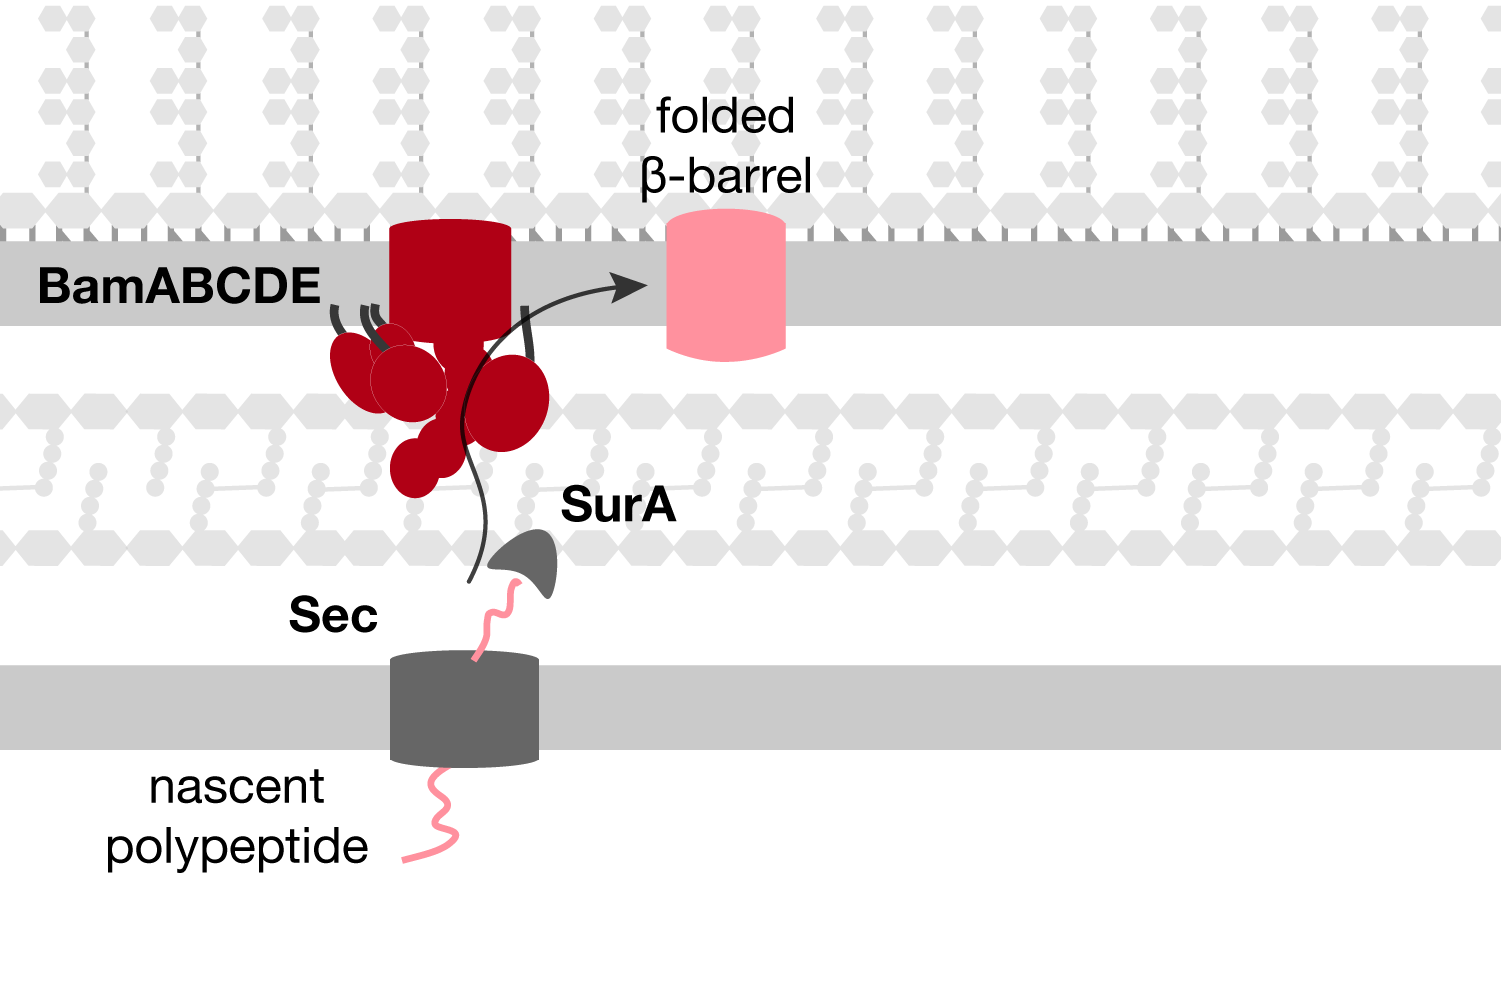 Outer membrane protein biogenesis - Outer membrane beta-barrels are folded and inserted into the outer membrane by the Bam complex (BamABCDE).